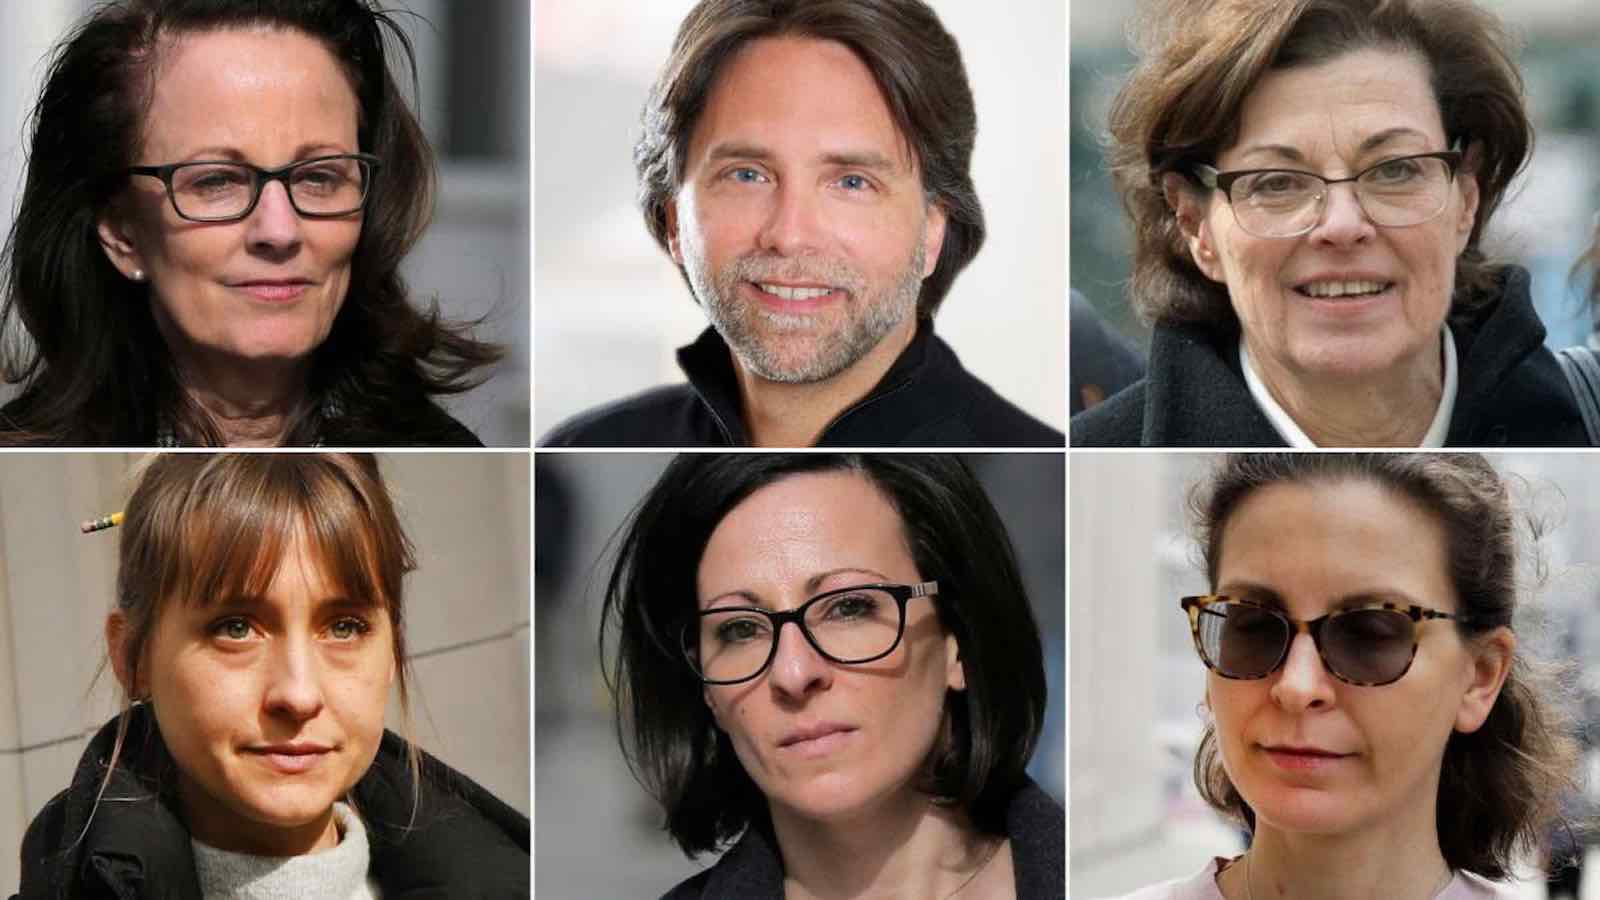 With most of the major players involved in the NXIVM brand either in jail or awaiting sentencing, is the brand still alive? If so, who's running NXIVM?